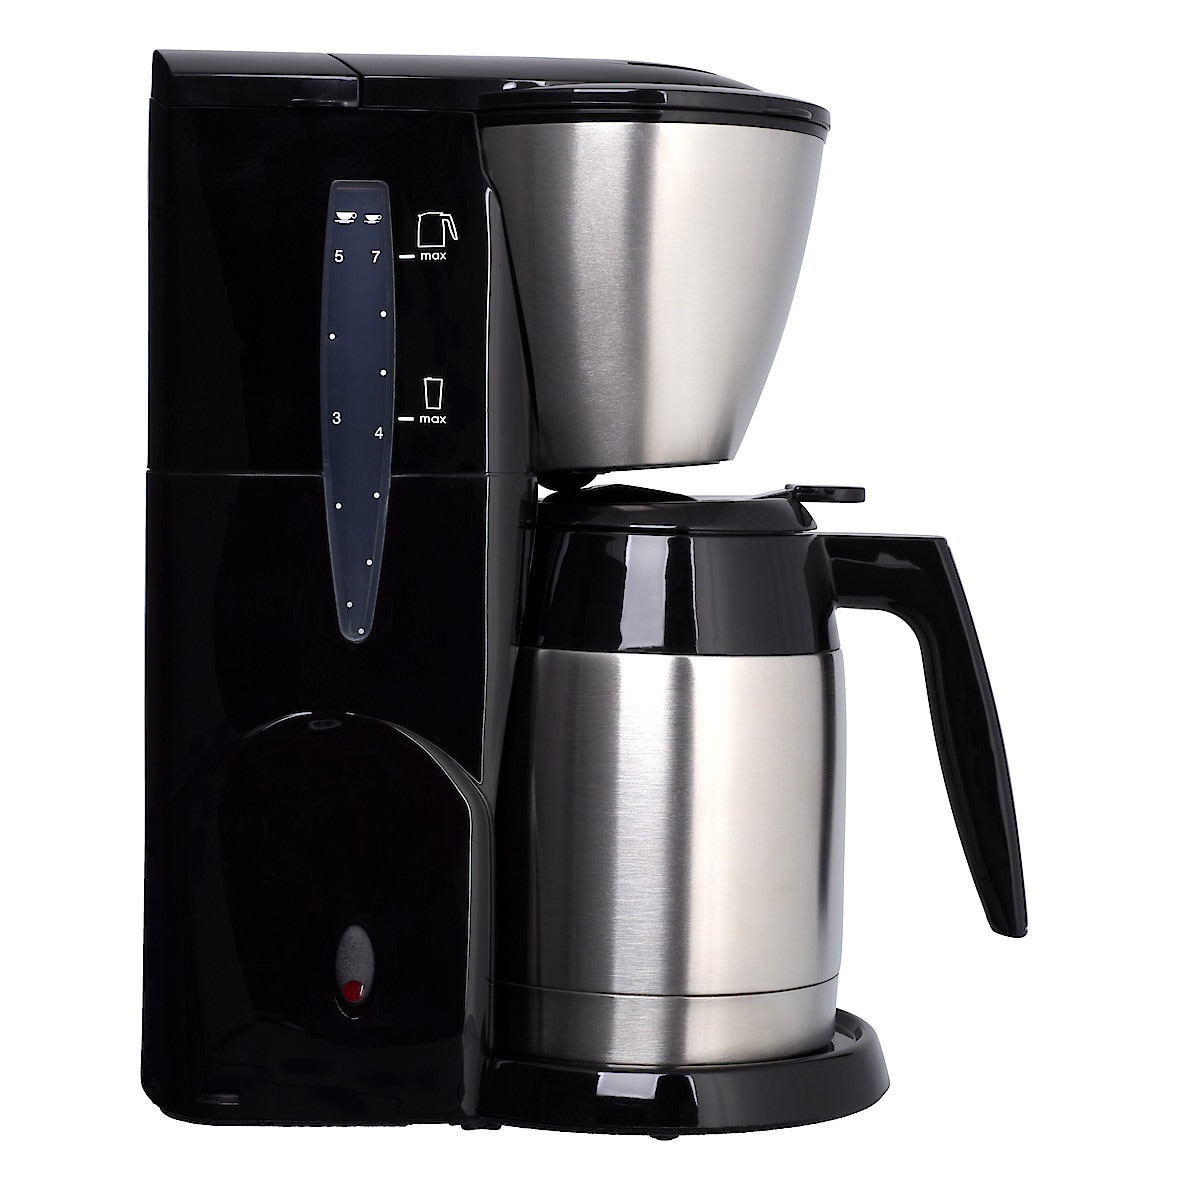 Melitta Single 5 Therm kaffetrakter med termokanne